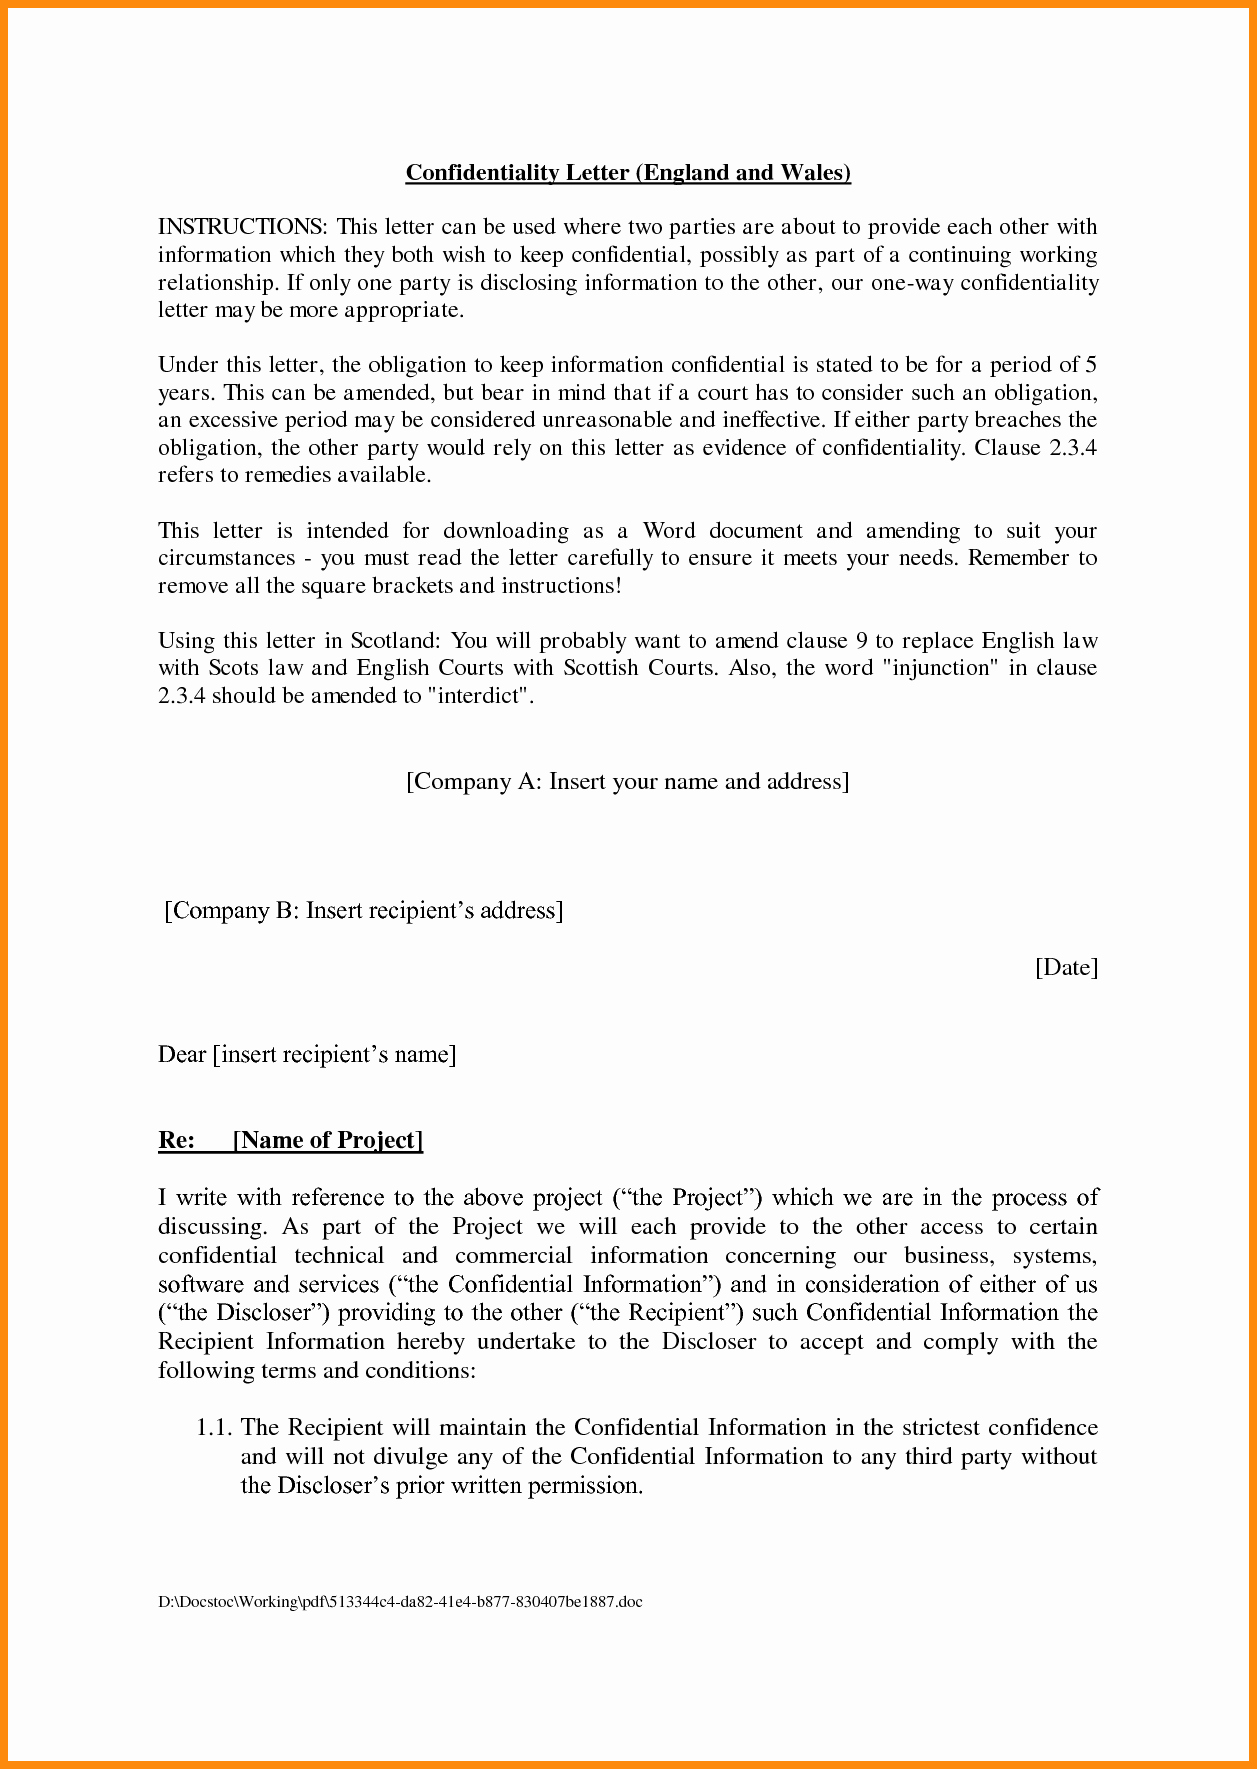 Sample Agreement Letter Between Two Parties Unique Agreement Letter Between Two Parties